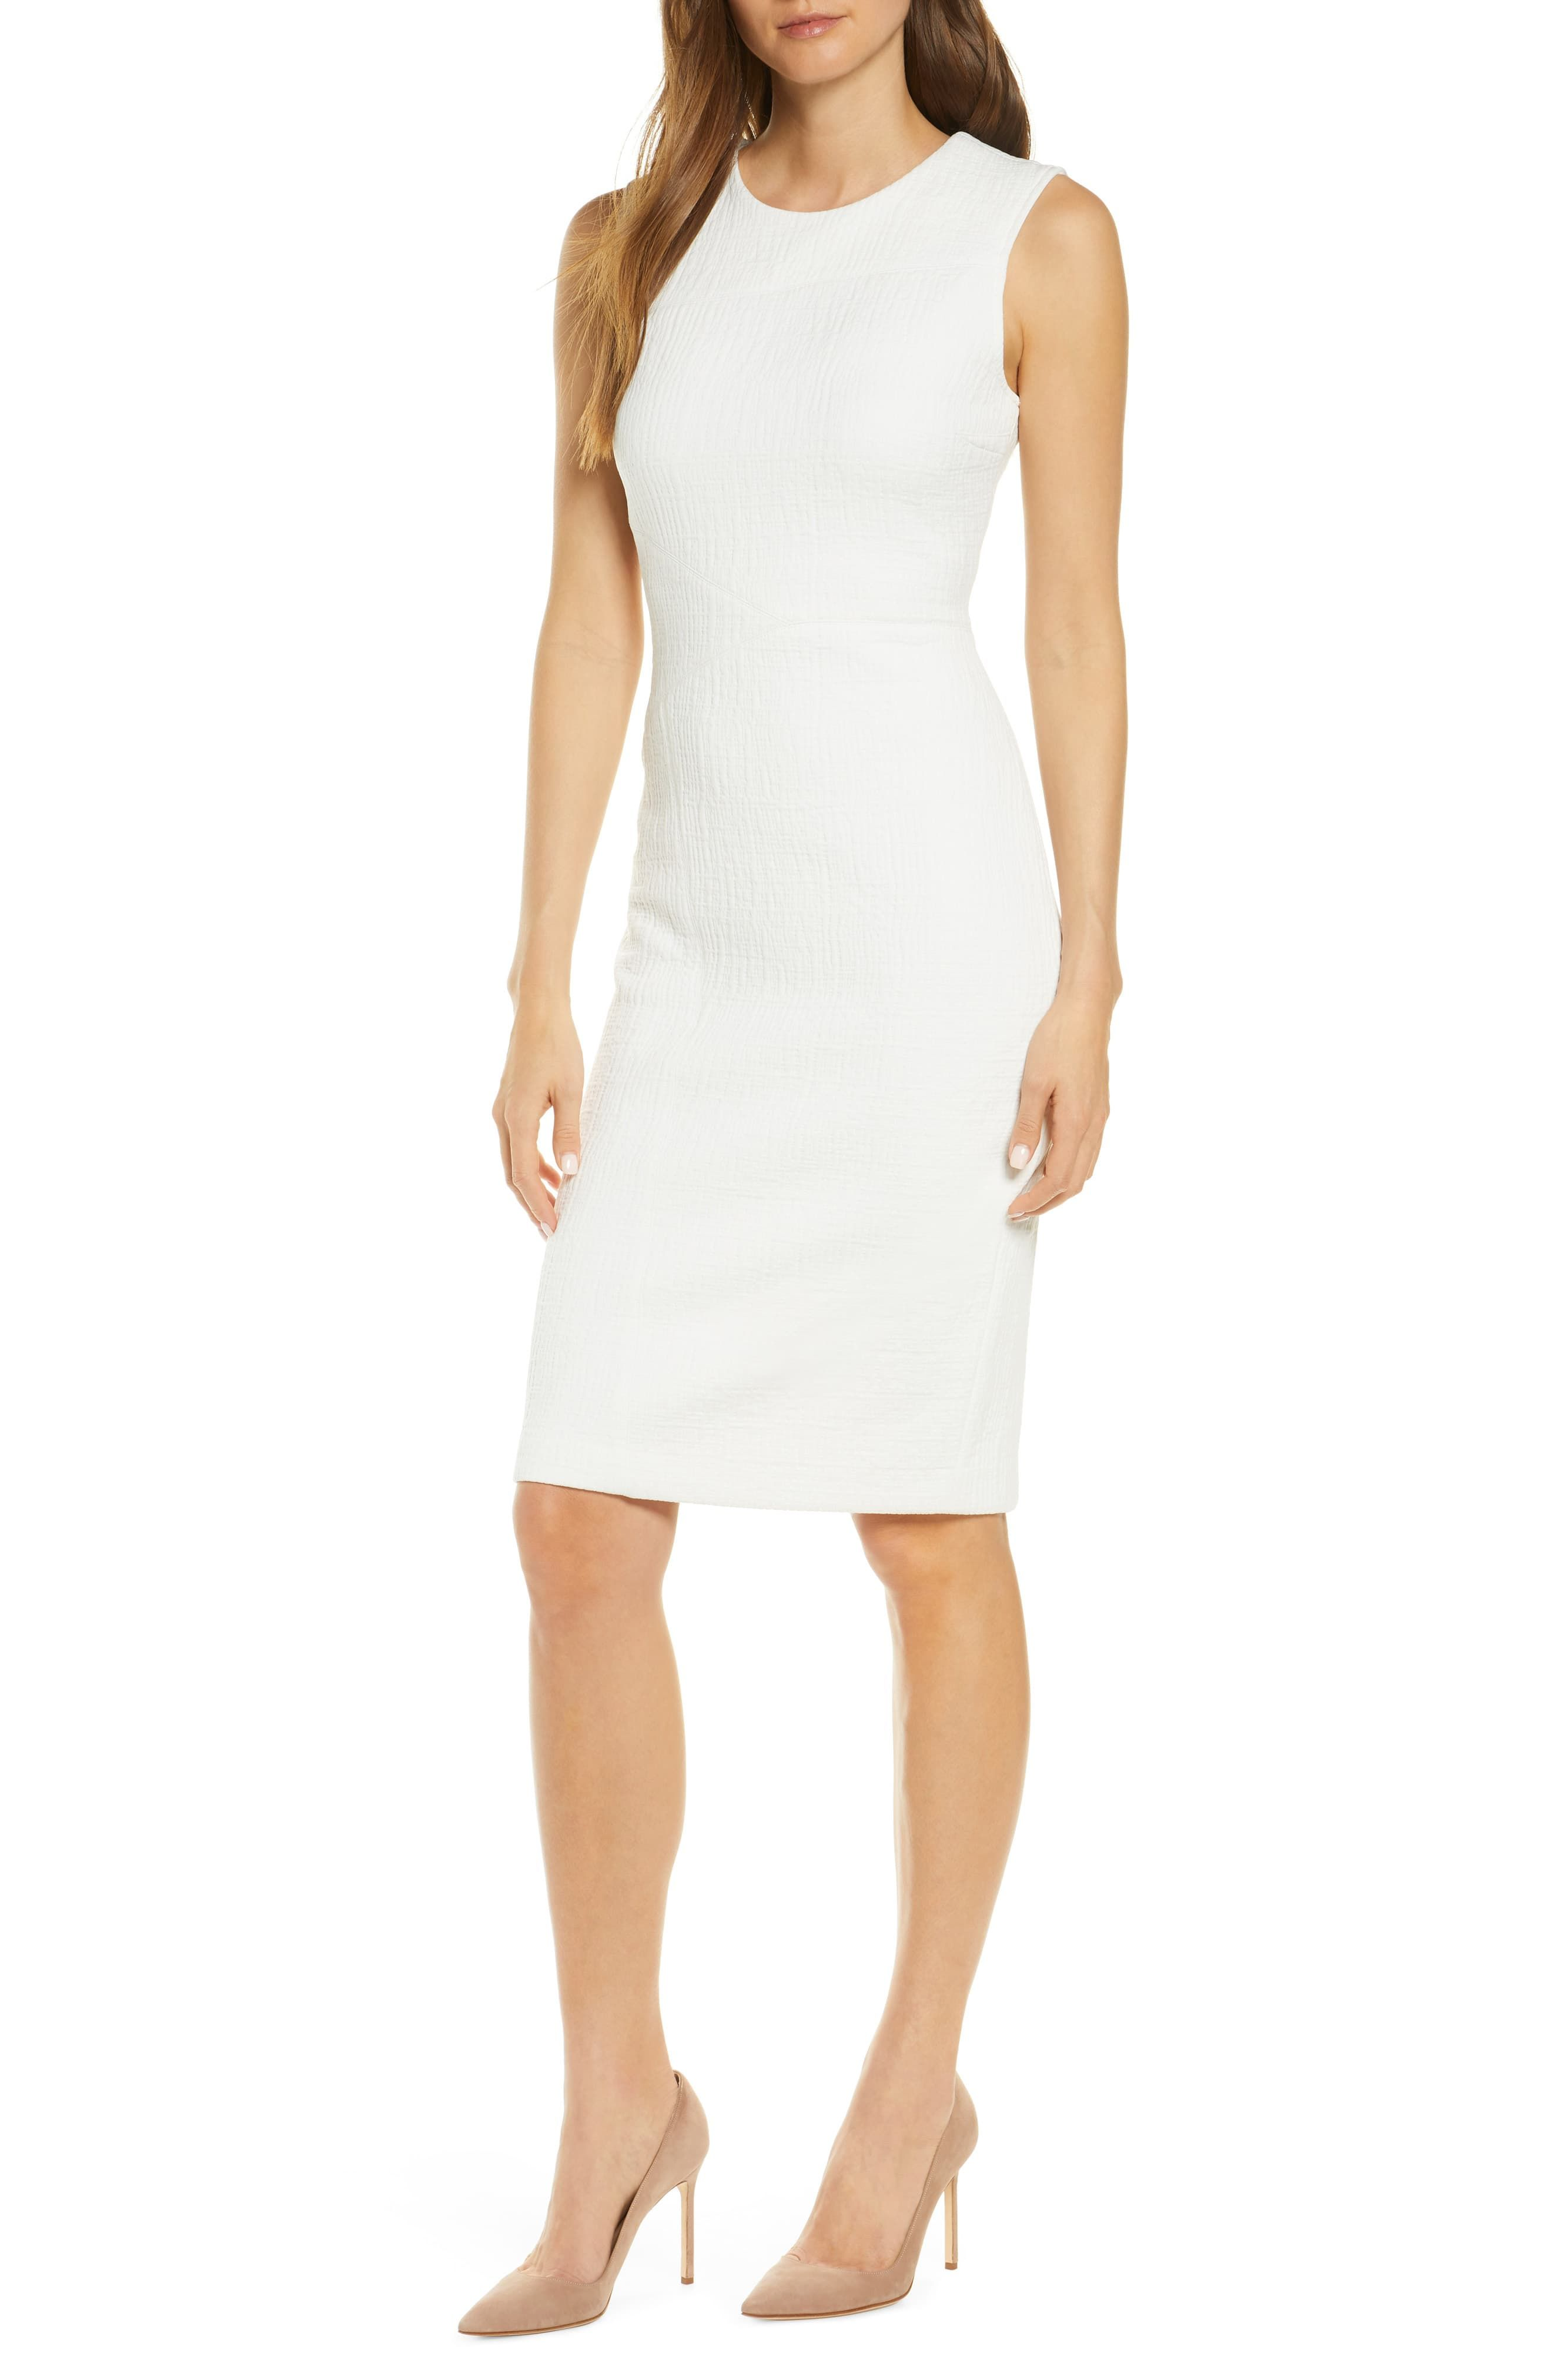 Forest Lily Textured Sleeveless Sheath Dress Nordstrom Sleeveless Sheath Dress White Turtleneck Dress Turtleneck Dress Sleeveless [ 4048 x 2640 Pixel ]